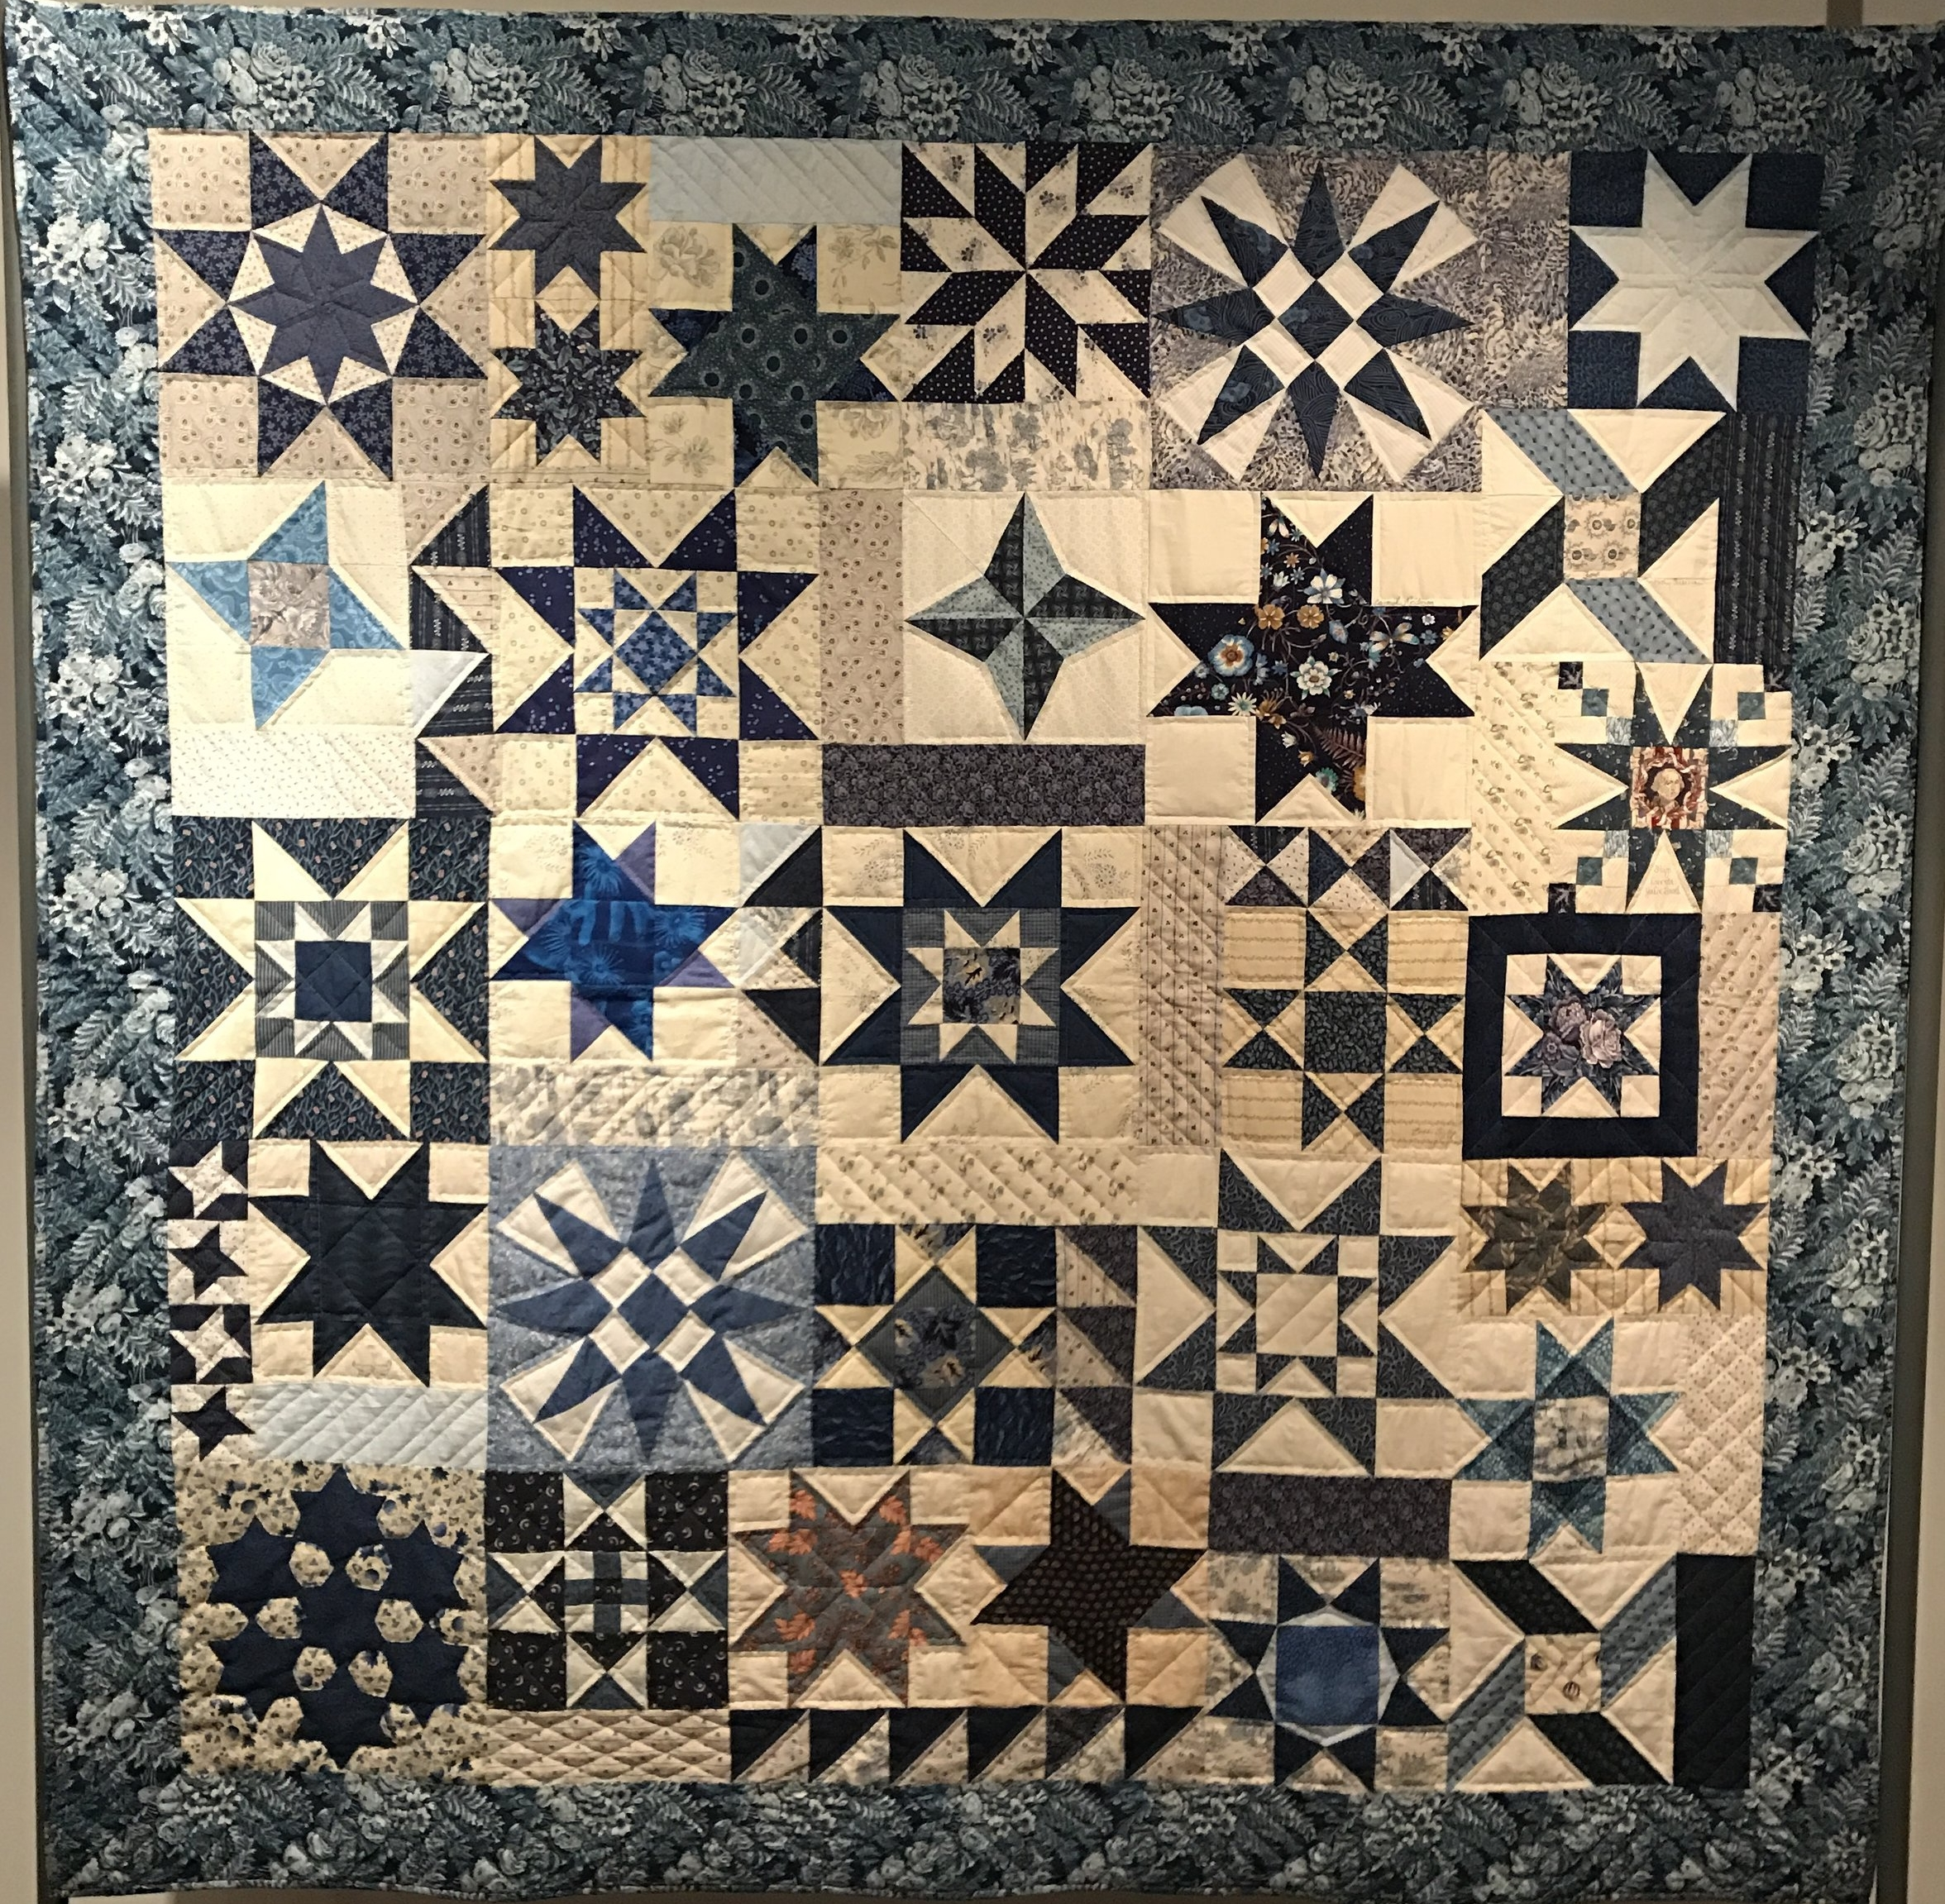 Quilt made for Cuesta